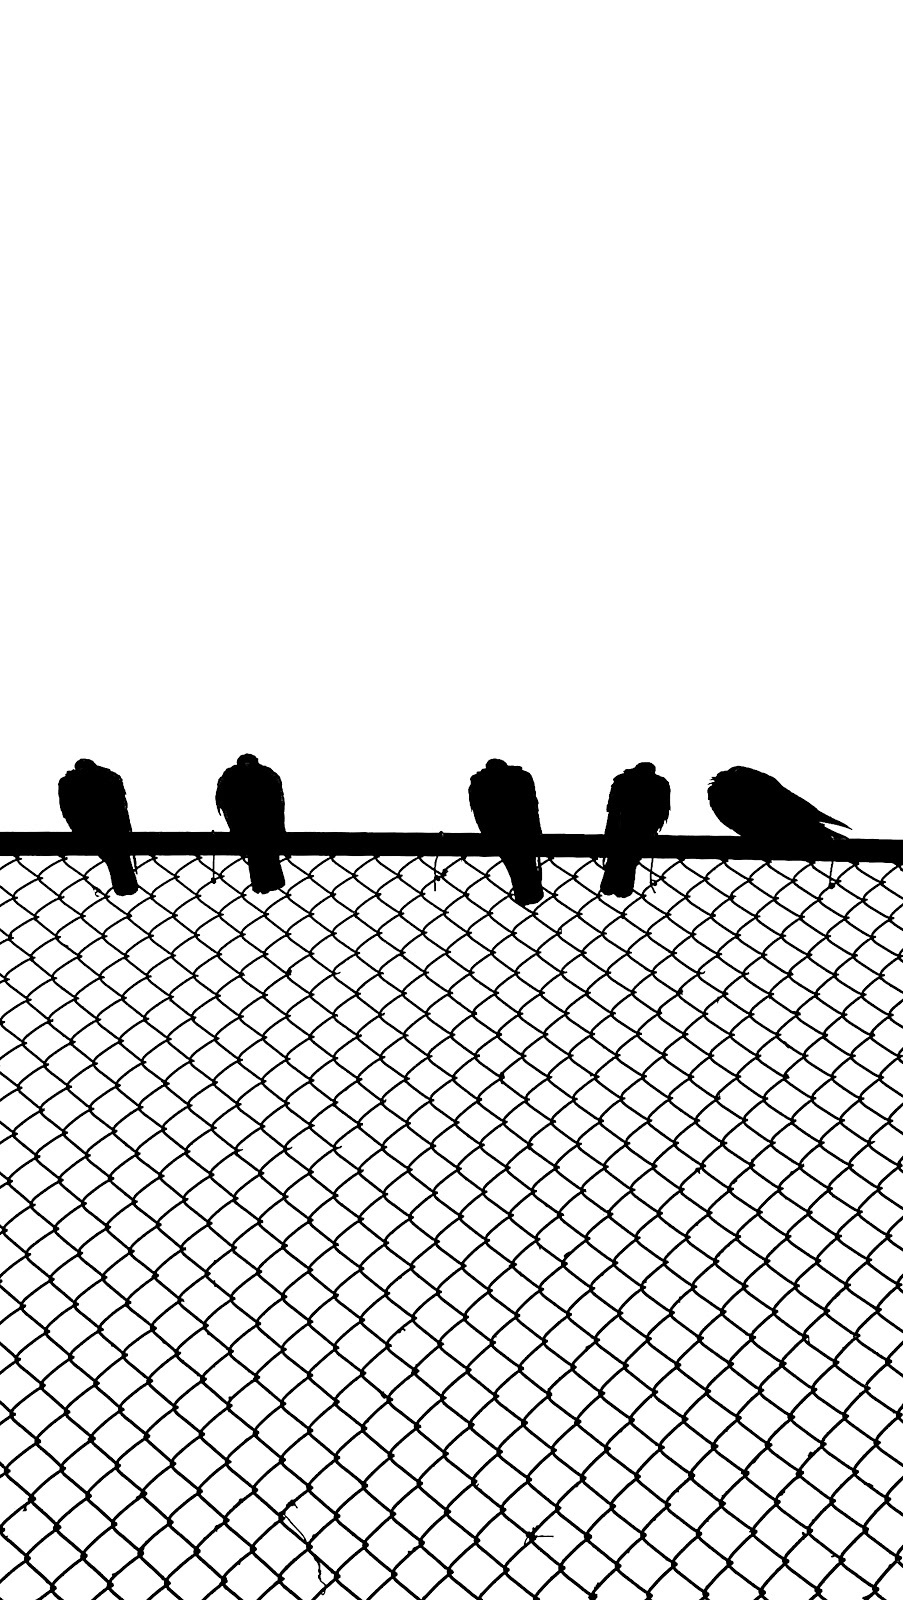 silhoiuette of birds on a fence